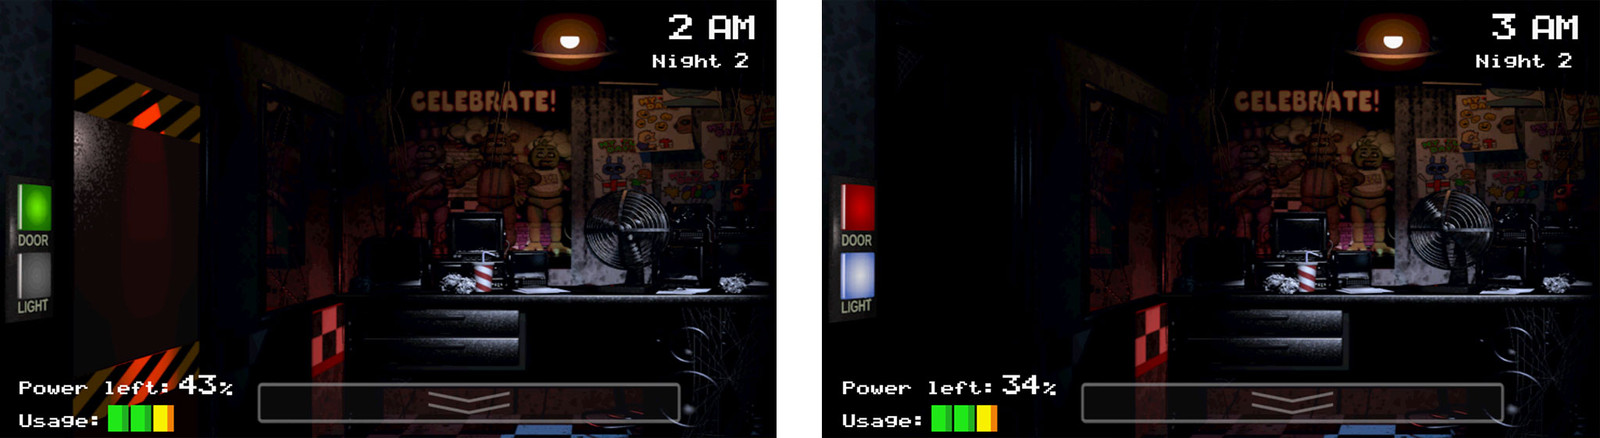 Five Nights at Freddy's: Top tips, hints, and cheats you need to know!